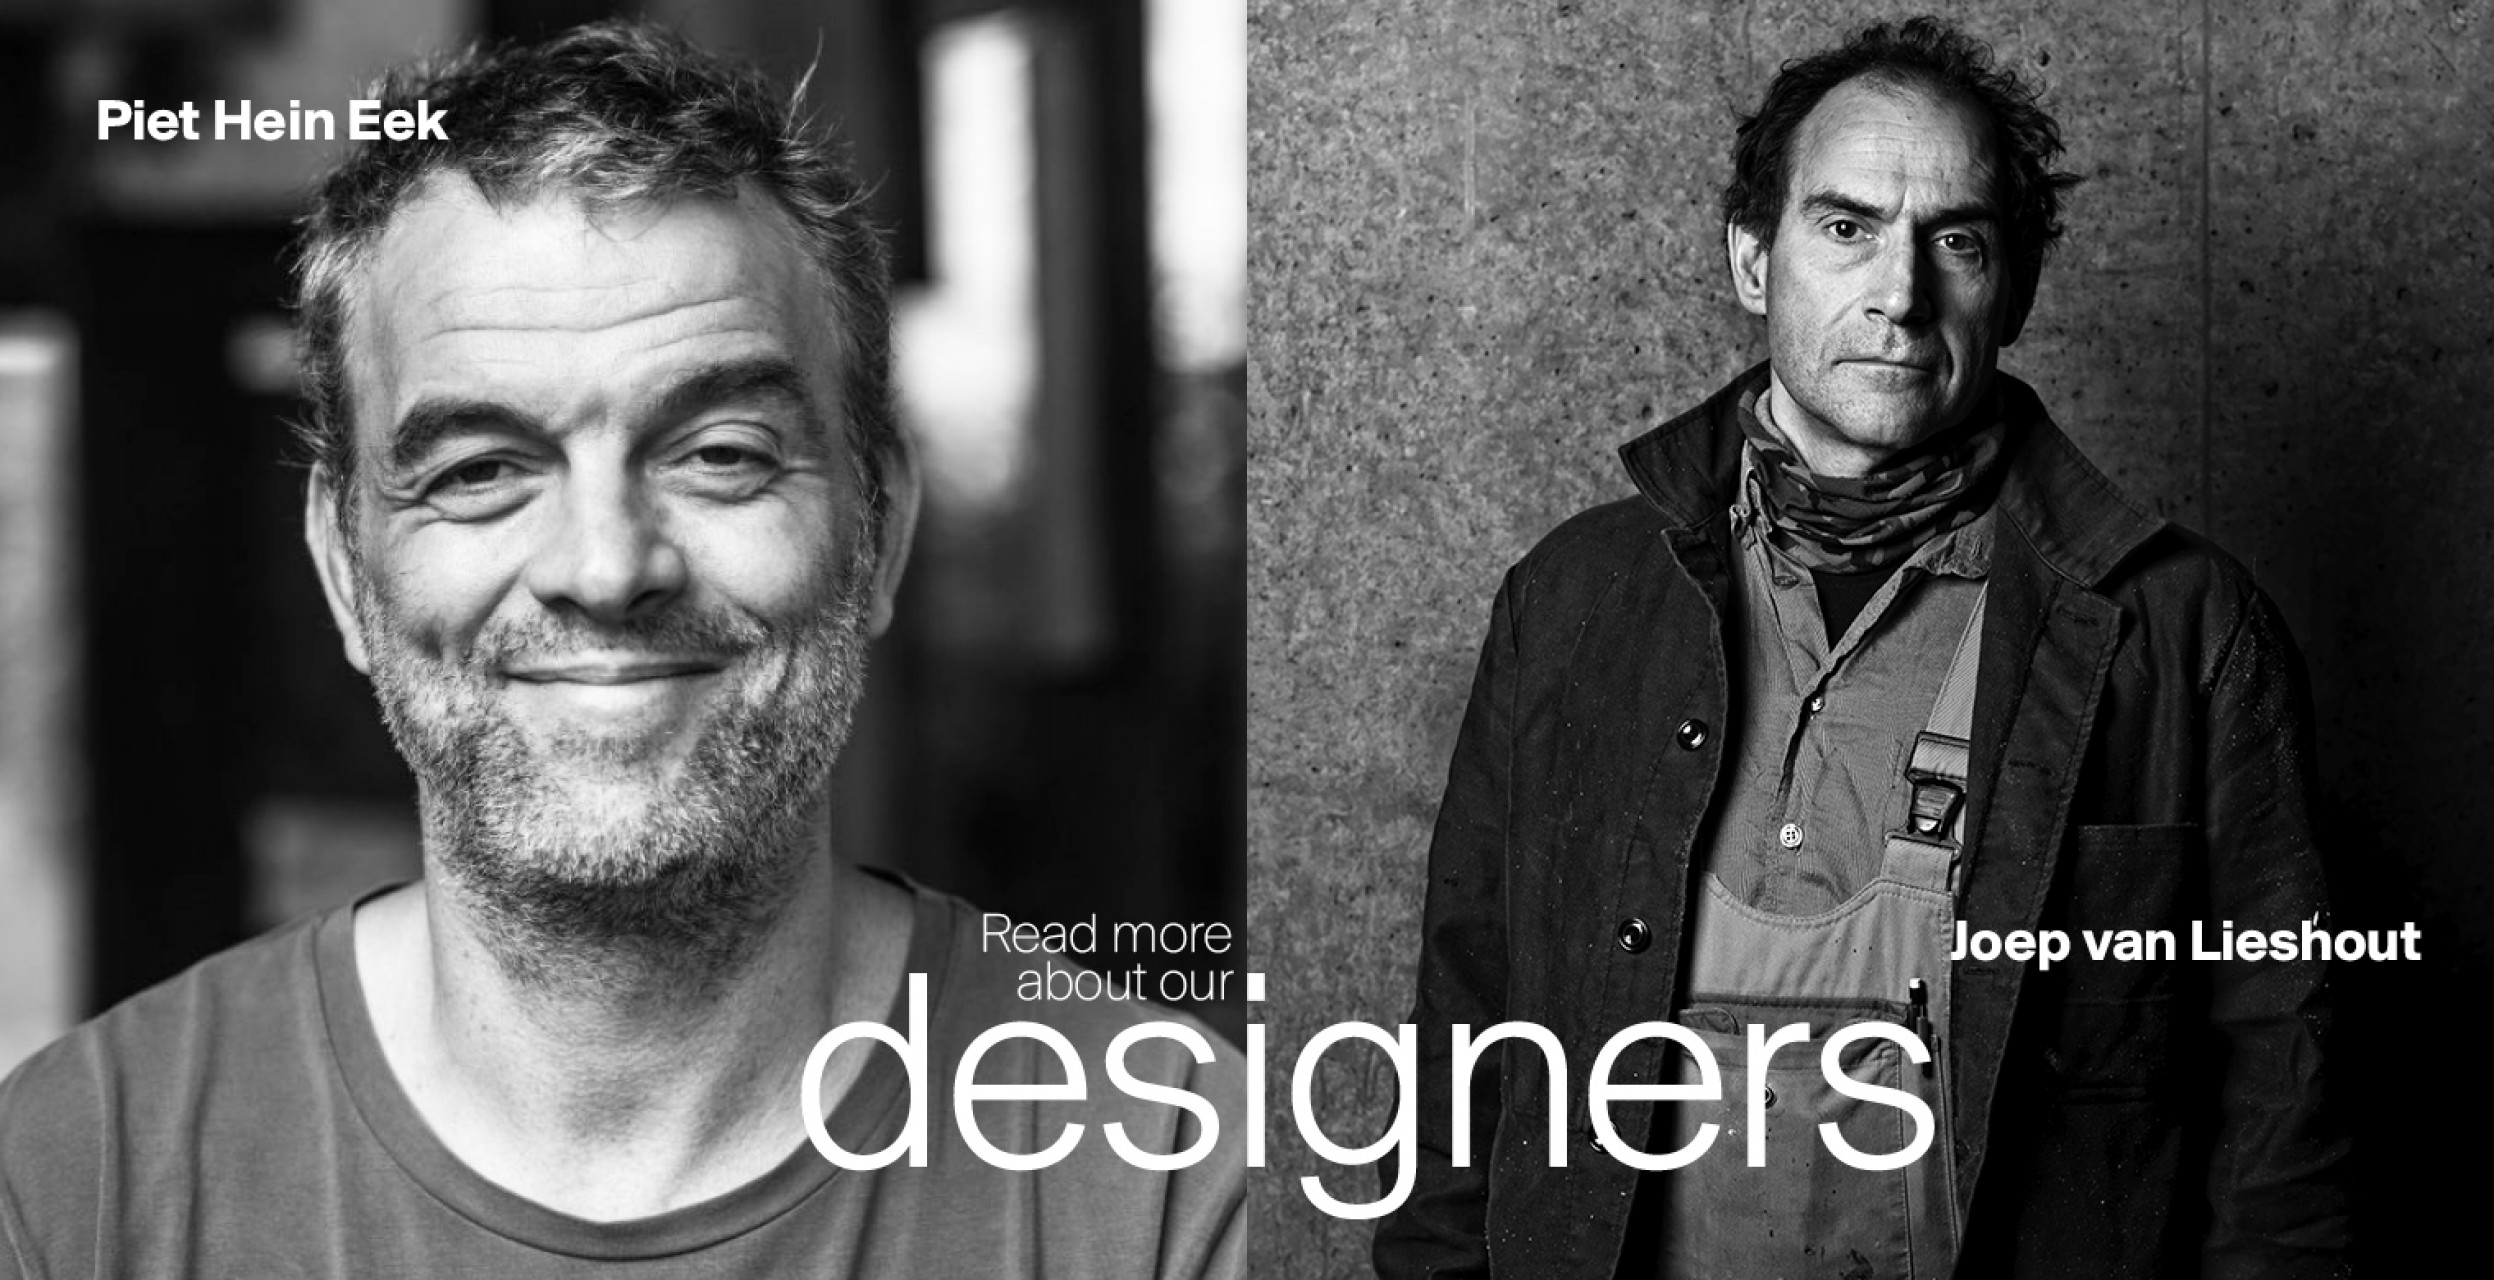 Read more about our designers